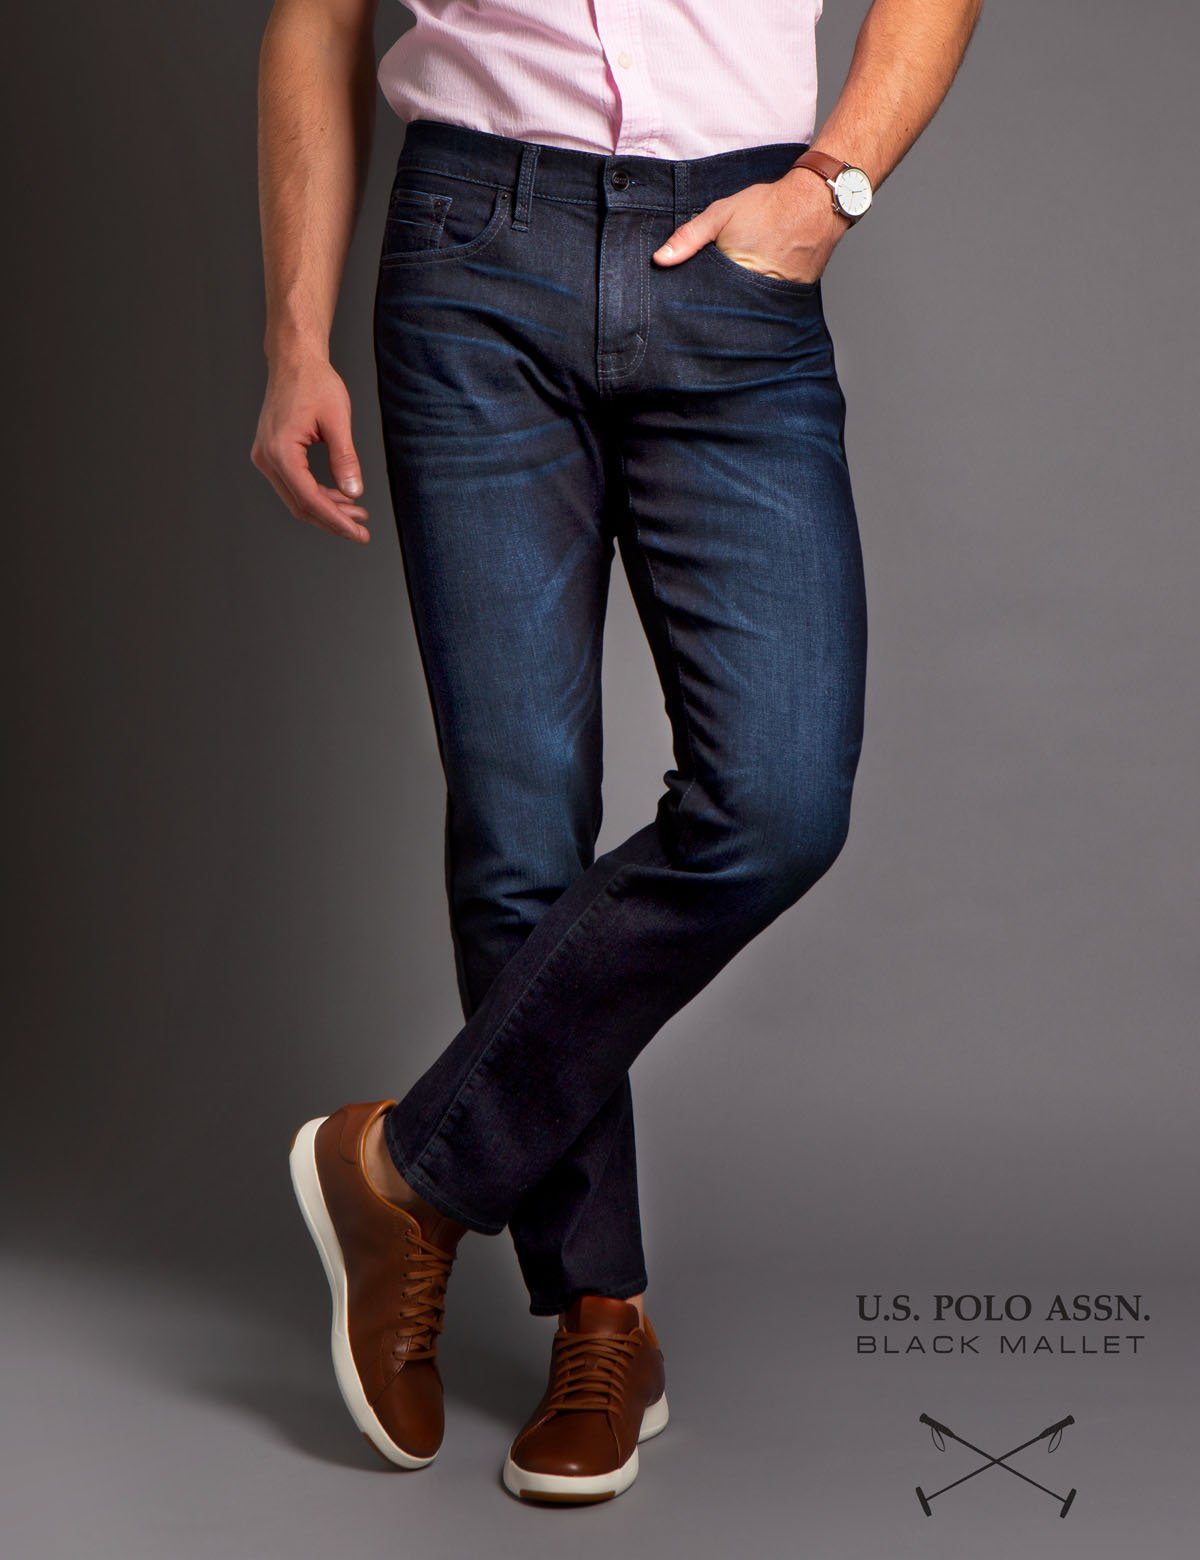 BLACK MALLET SLIM FIT DENIM - U.S. Polo Assn.